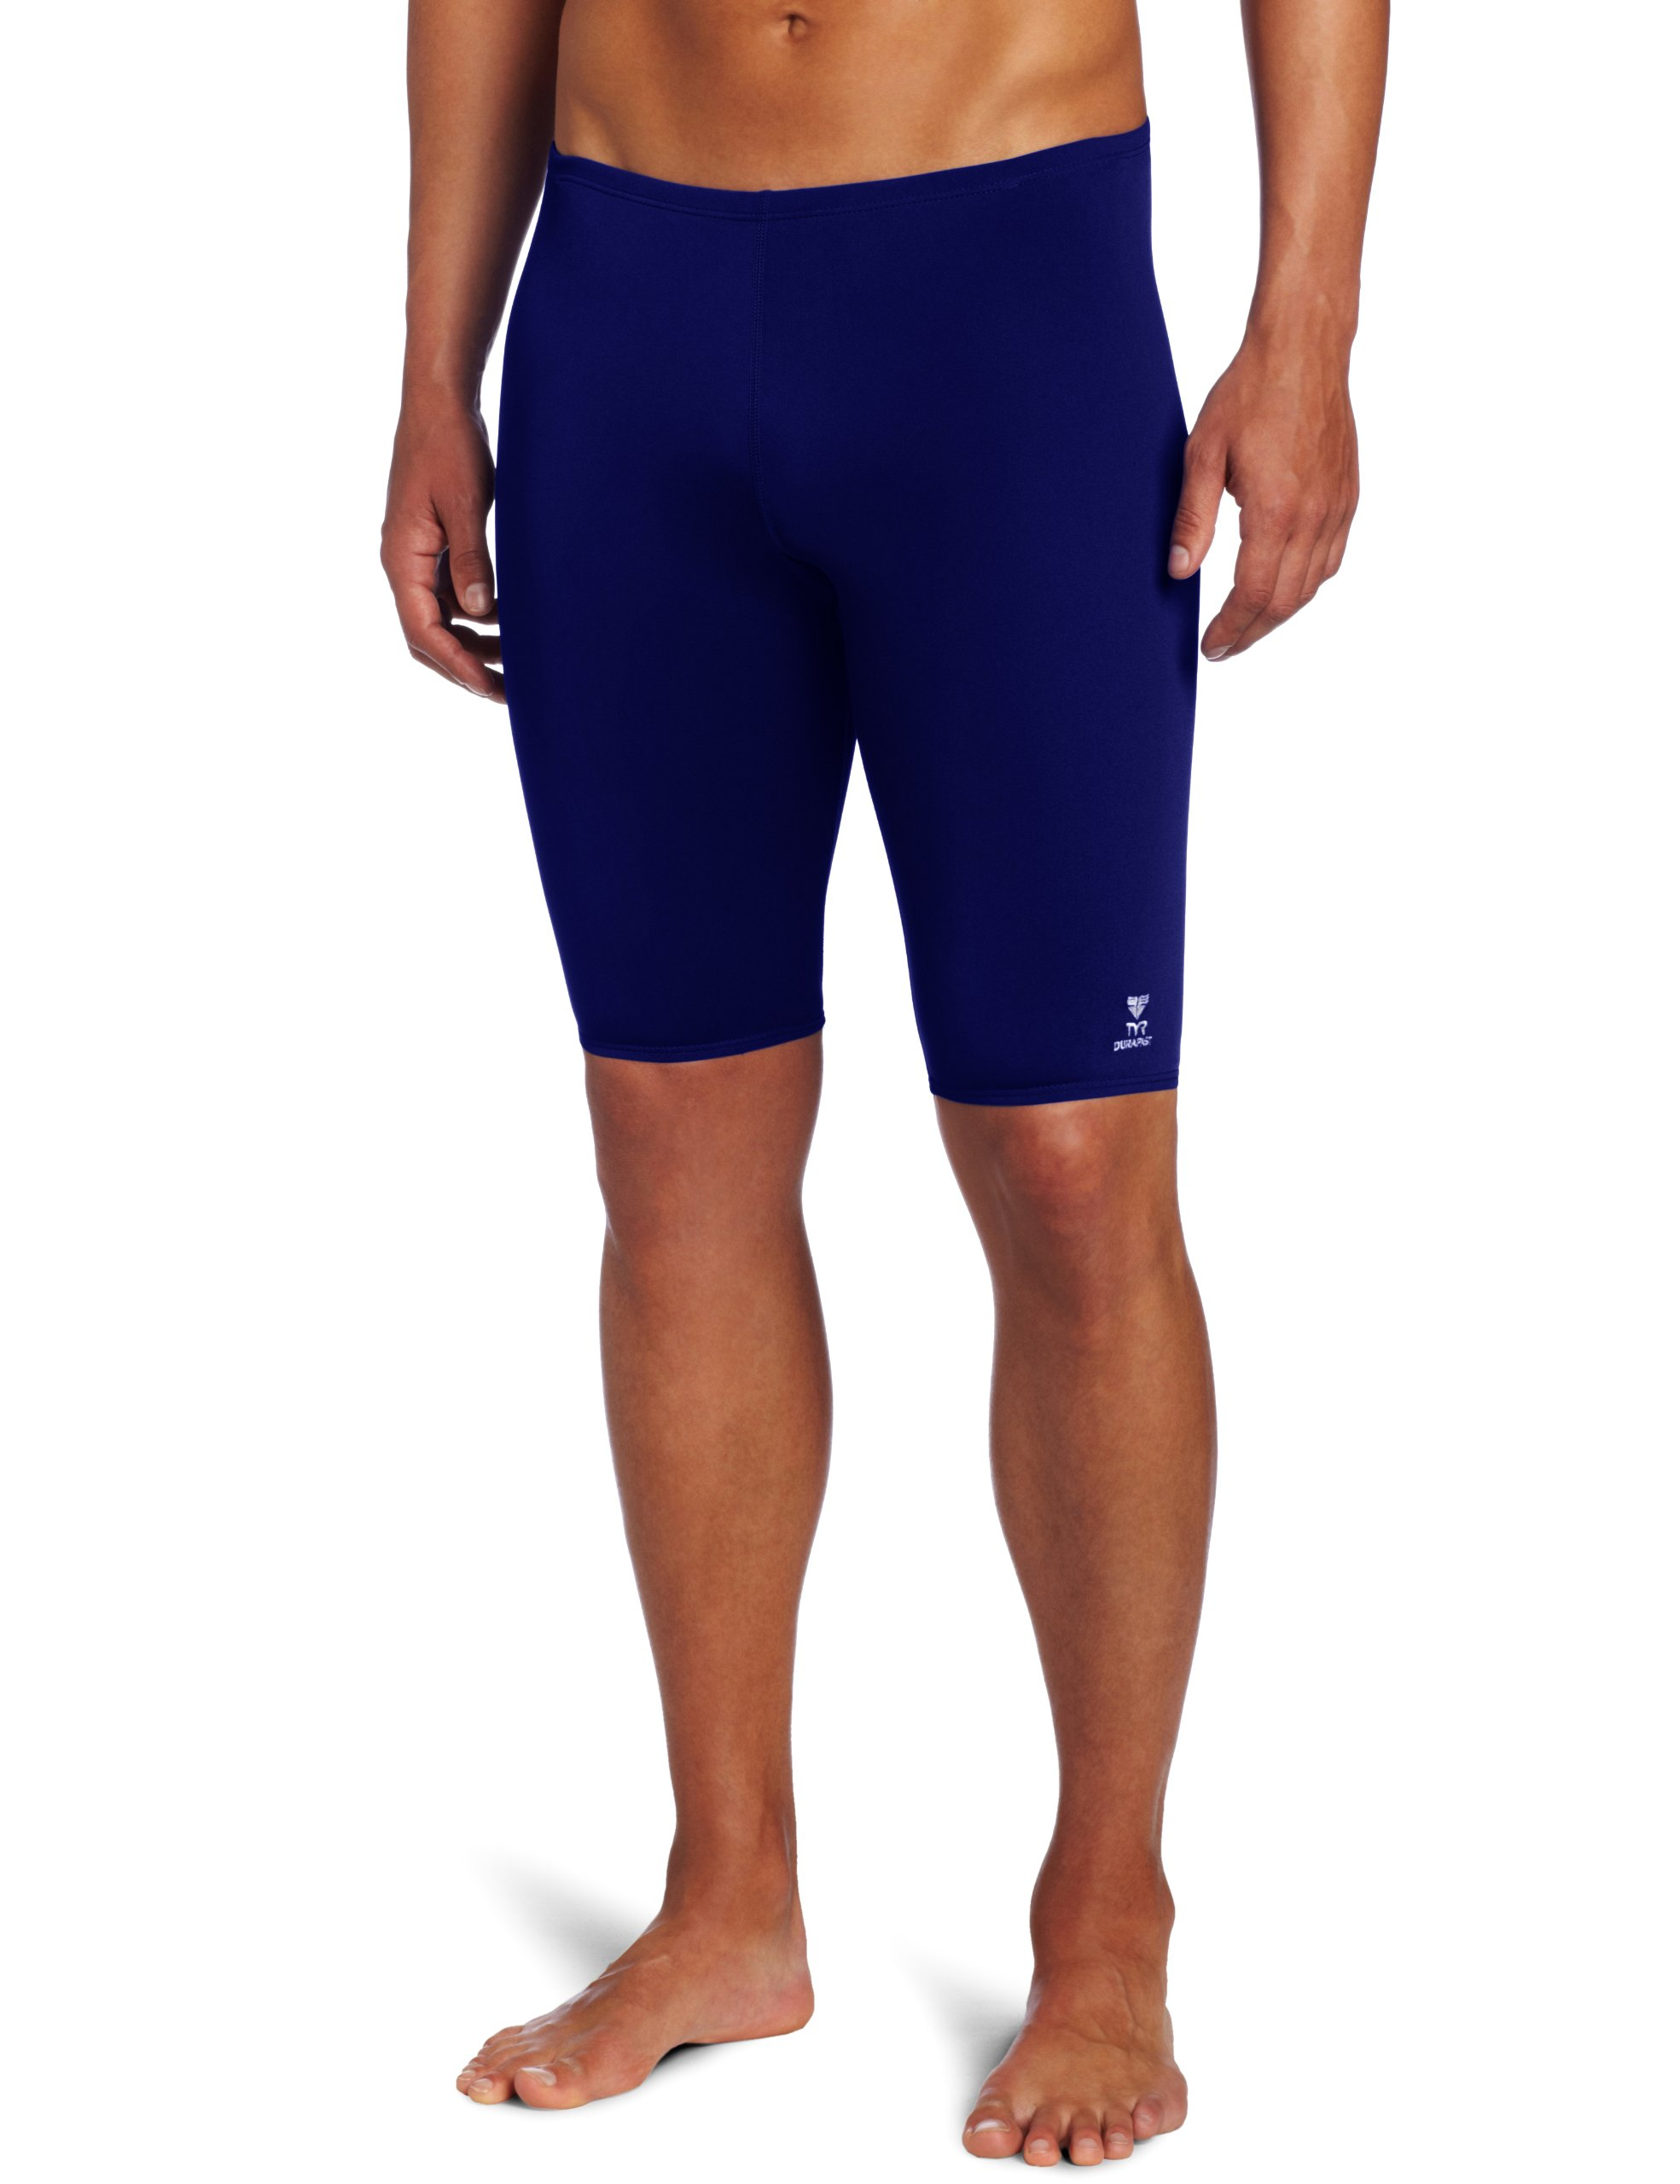 TYR SDUR7A40132 Durafast One Solid Jammer Navy 32 by TYR